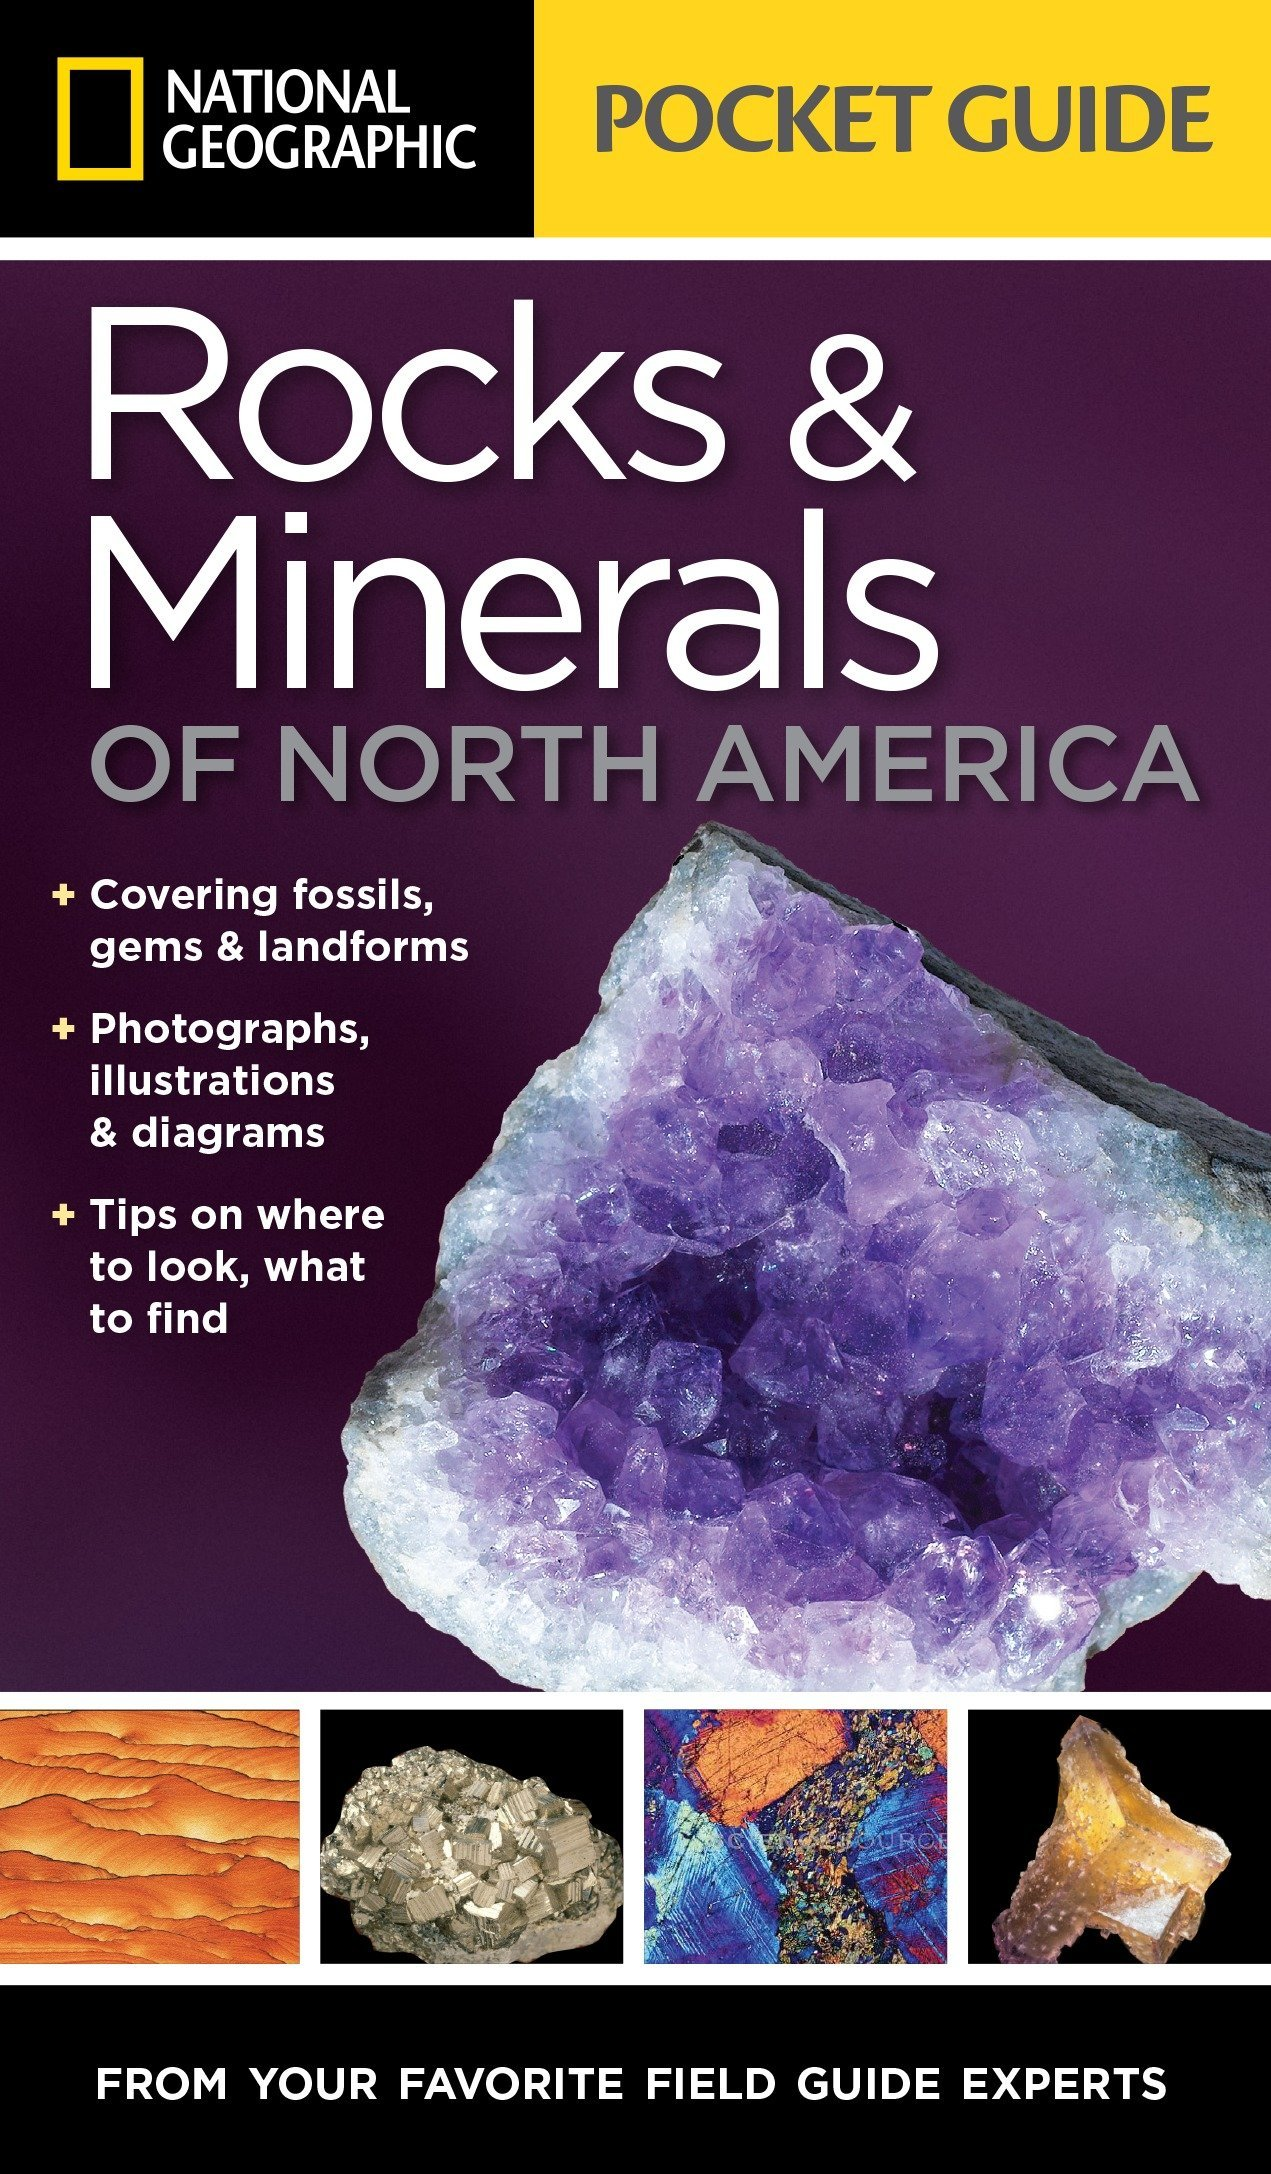 National Geographic Pocket Guide to Rocks and Minerals of North America